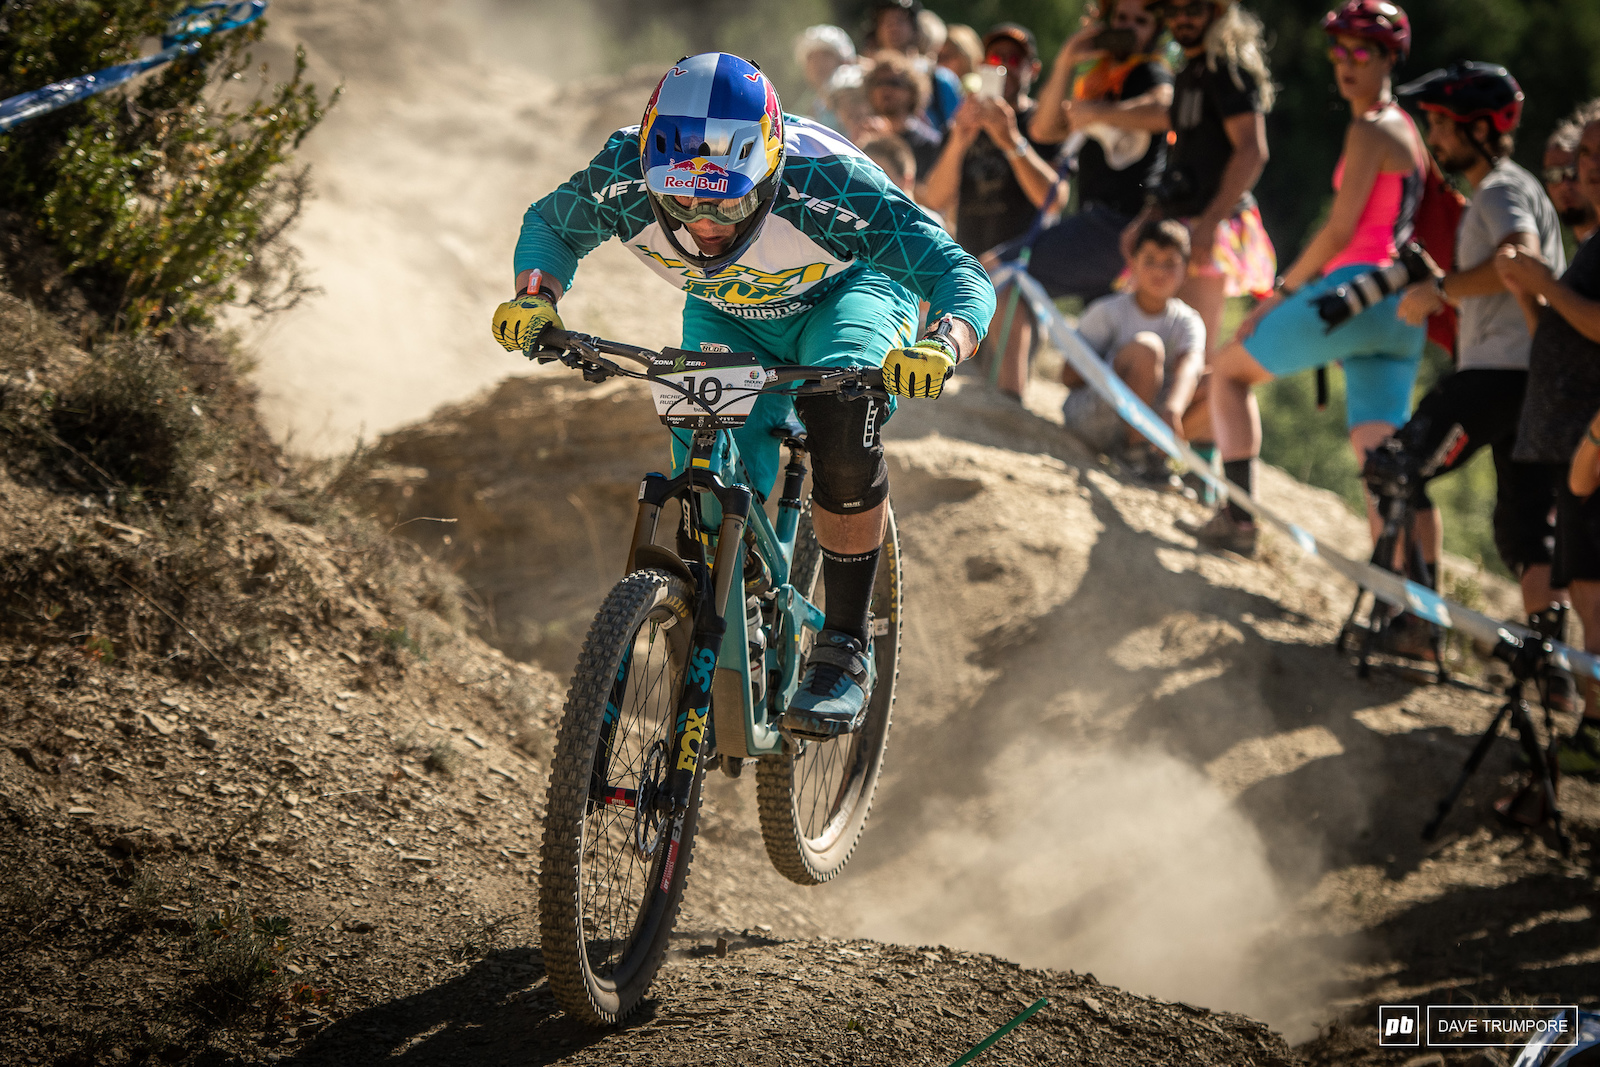 Richie Rude is riding with fire and motivation this weekend and it showed right out of the gate. He rode the first three stages of the day on another level and is definitely the favorite going into Sunday.